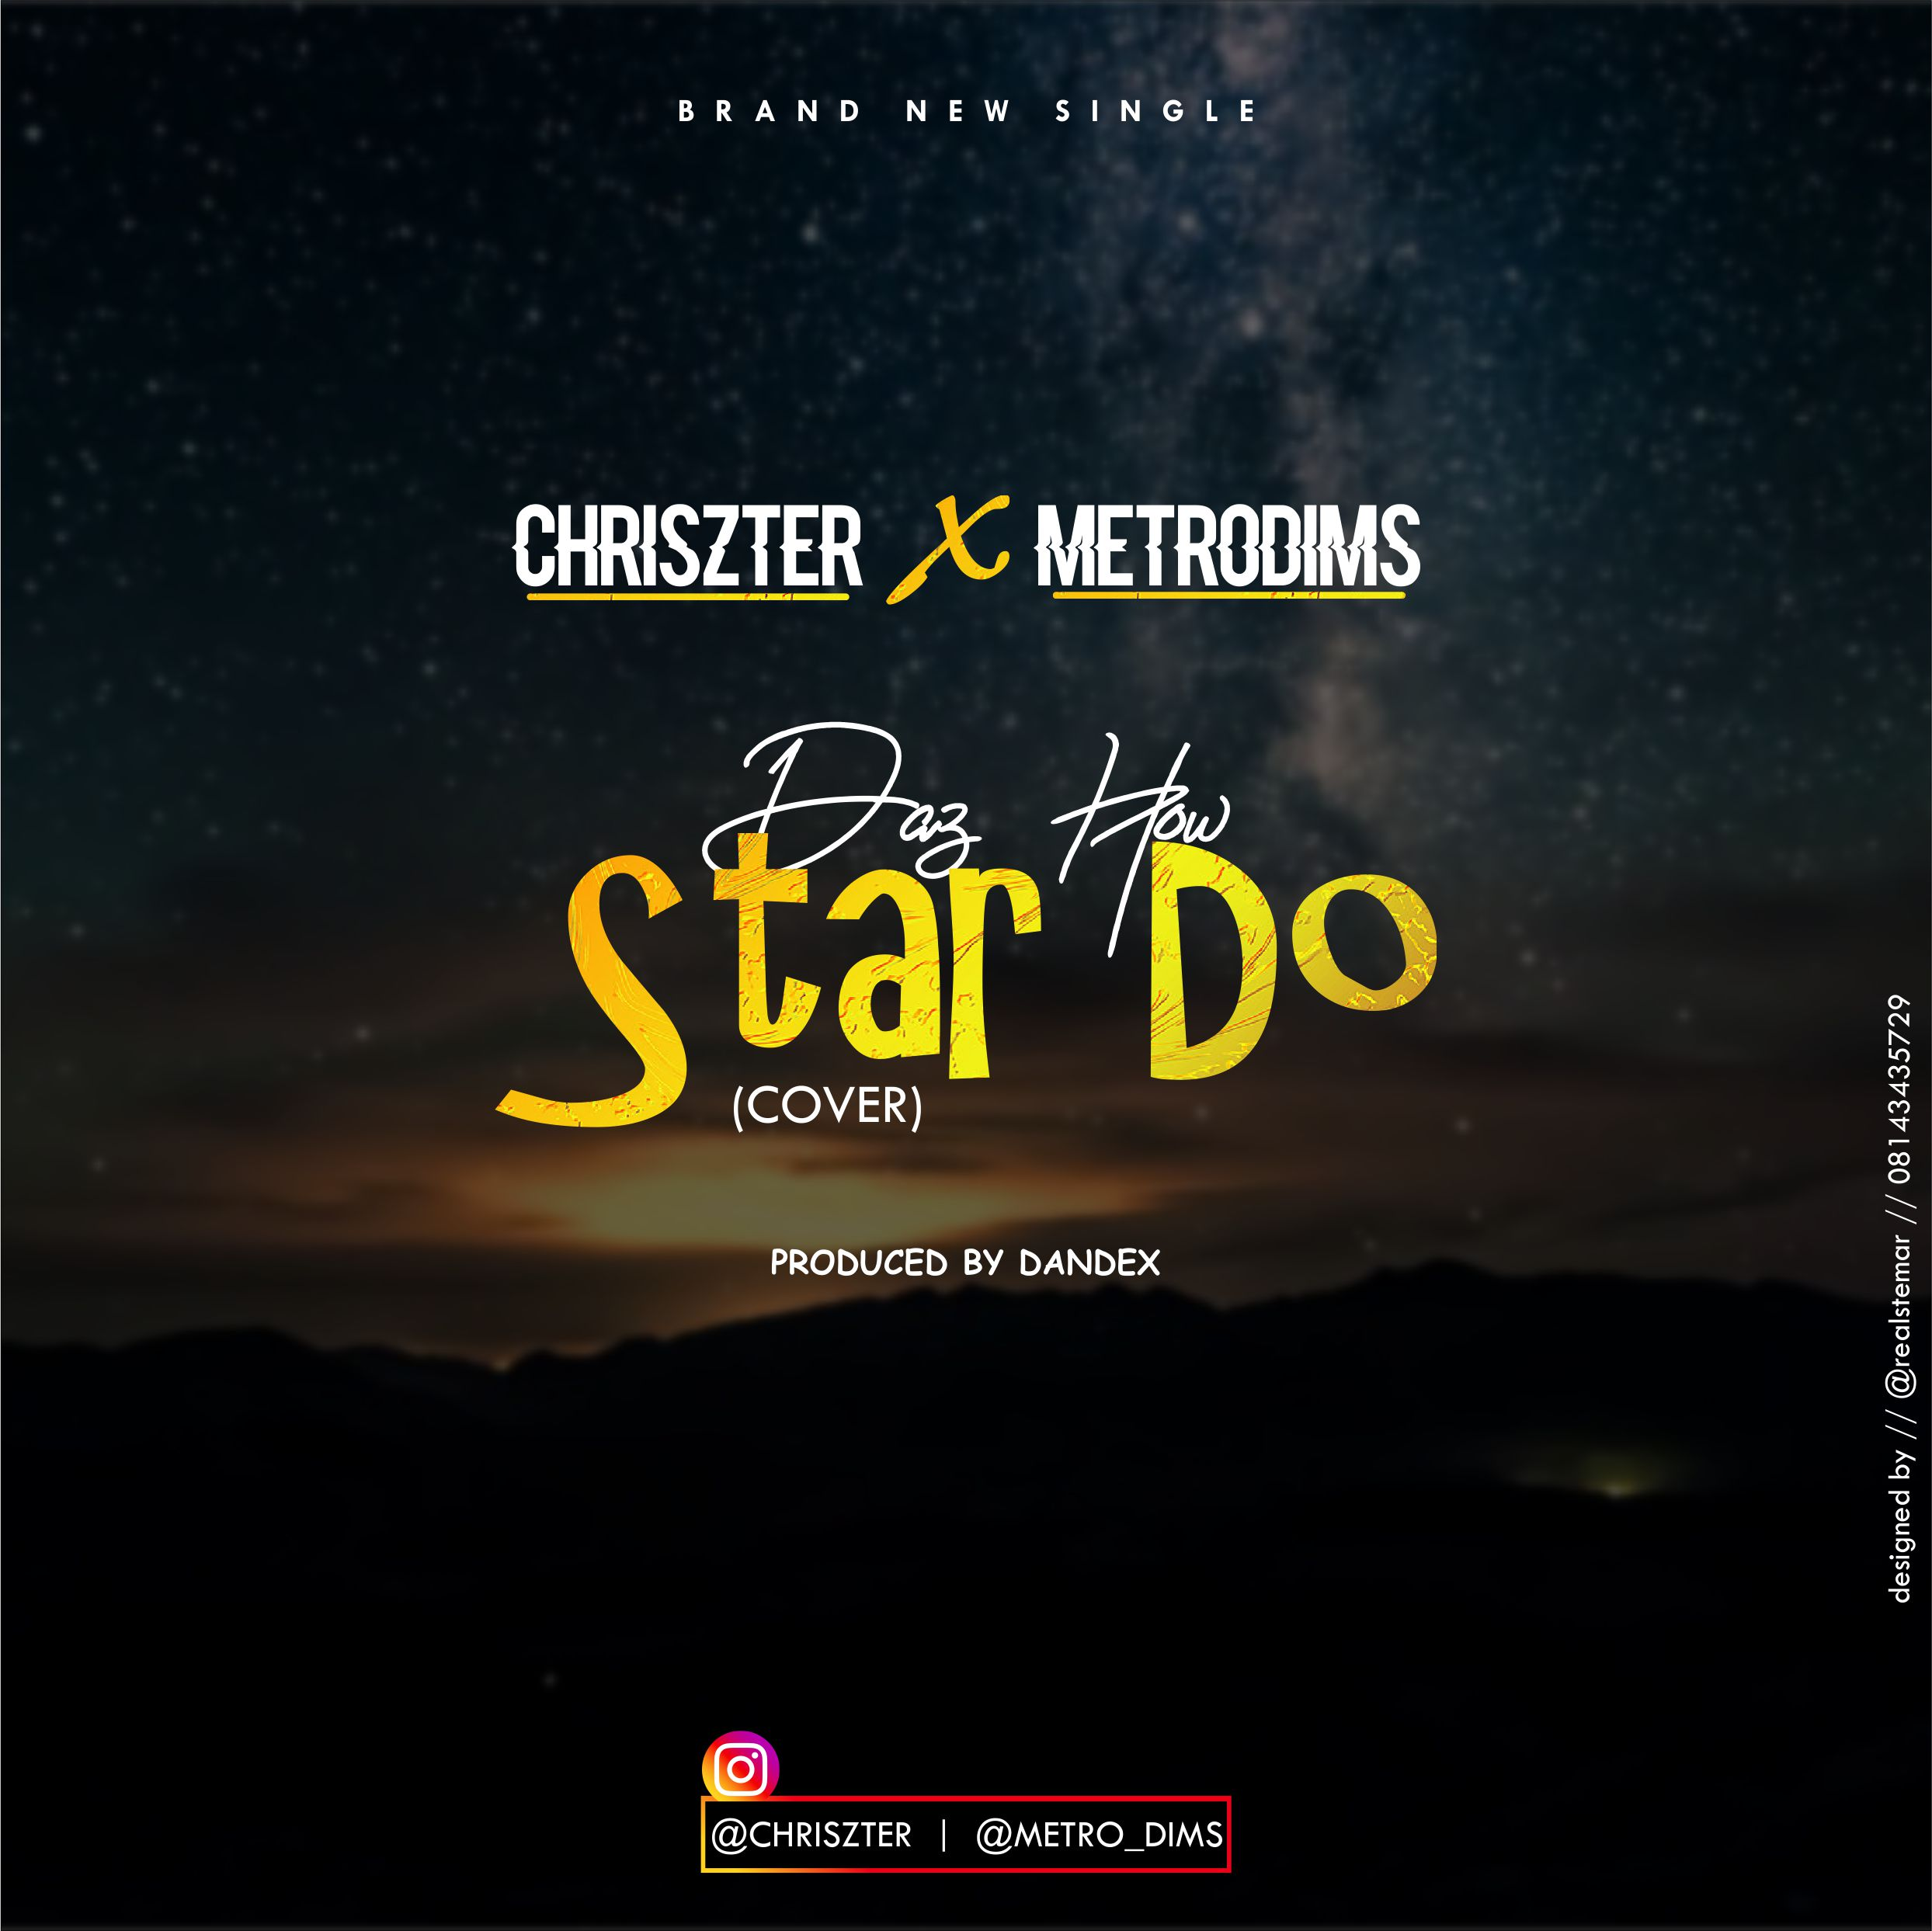 MUSIC : Chriszter X Metrodims - Daz How Star Do (Cover) 1